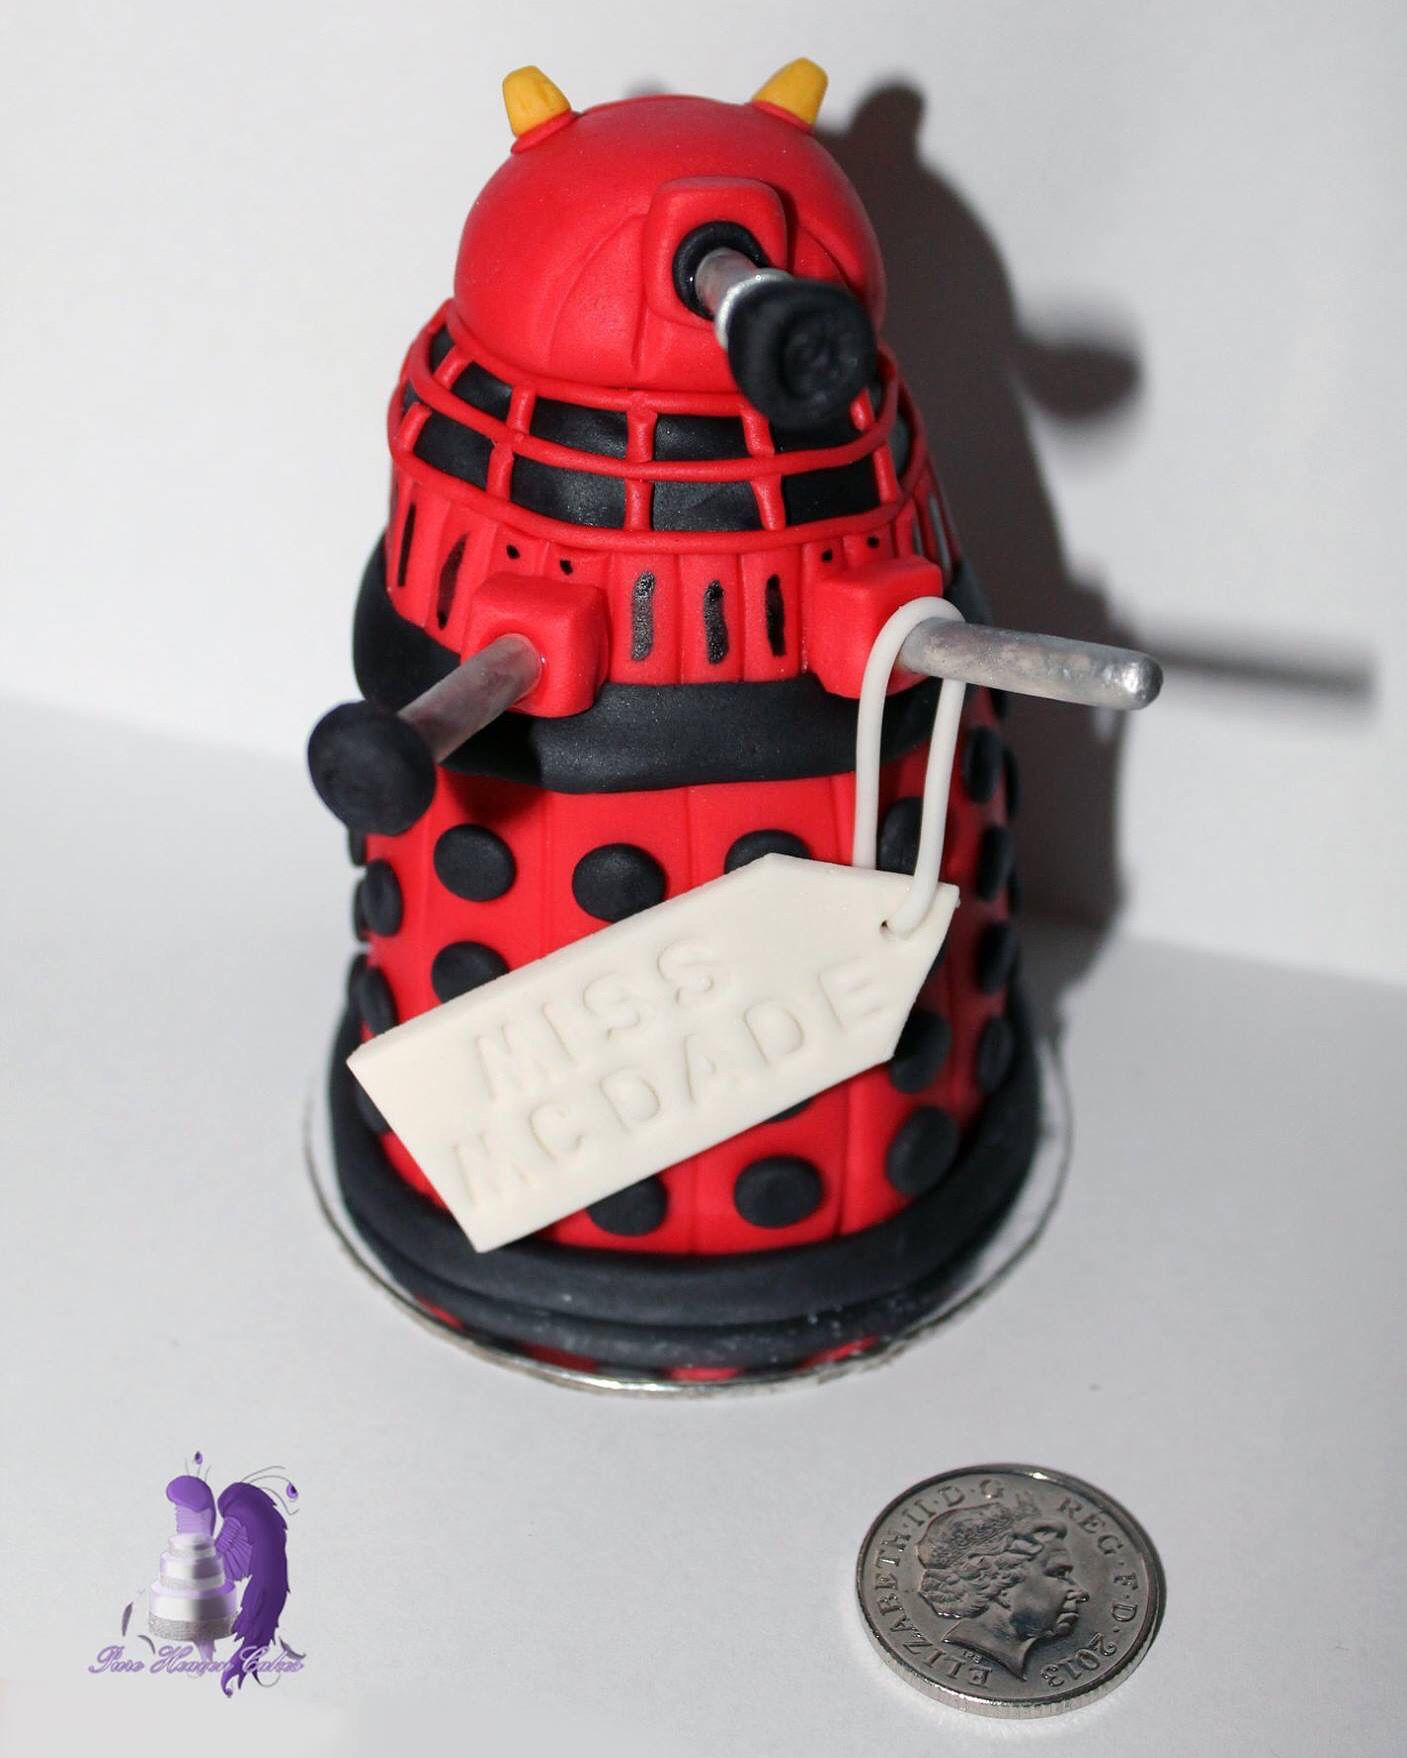 Mini dalek cake 10p for size reference this was a teachers mini dalek cake for size reference this was a teachers thank you gift i believe it might be dalek caan negle Images